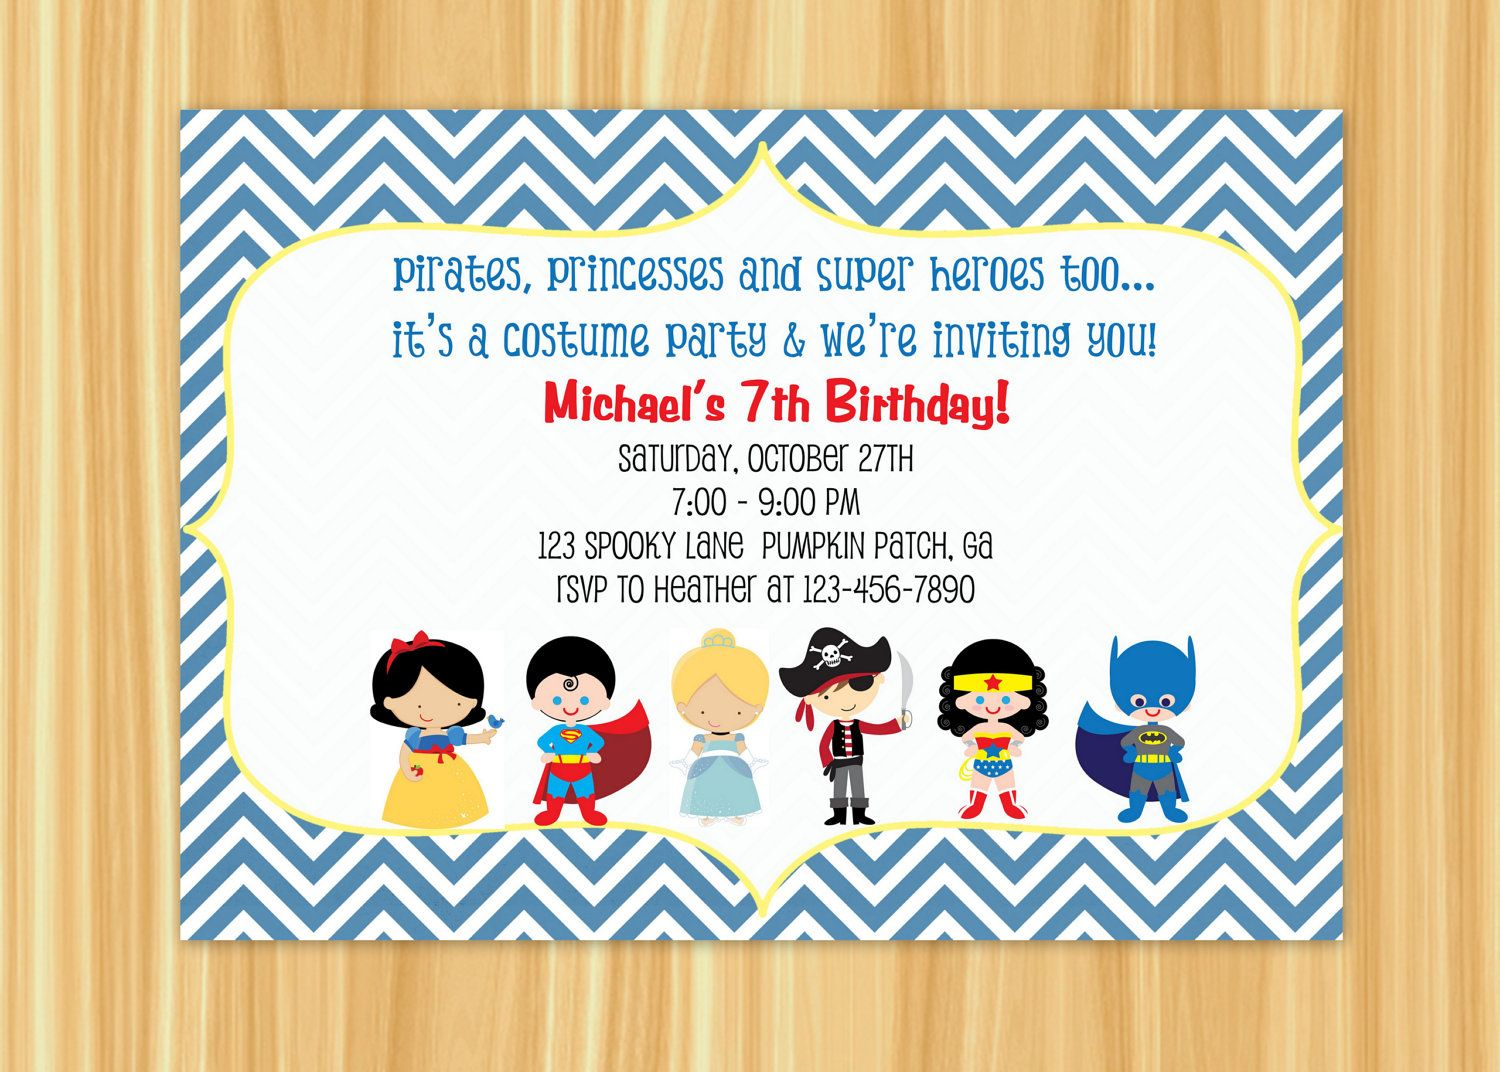 Kids Costume Party Birthday Invitation Blue or Orange Chevron ...